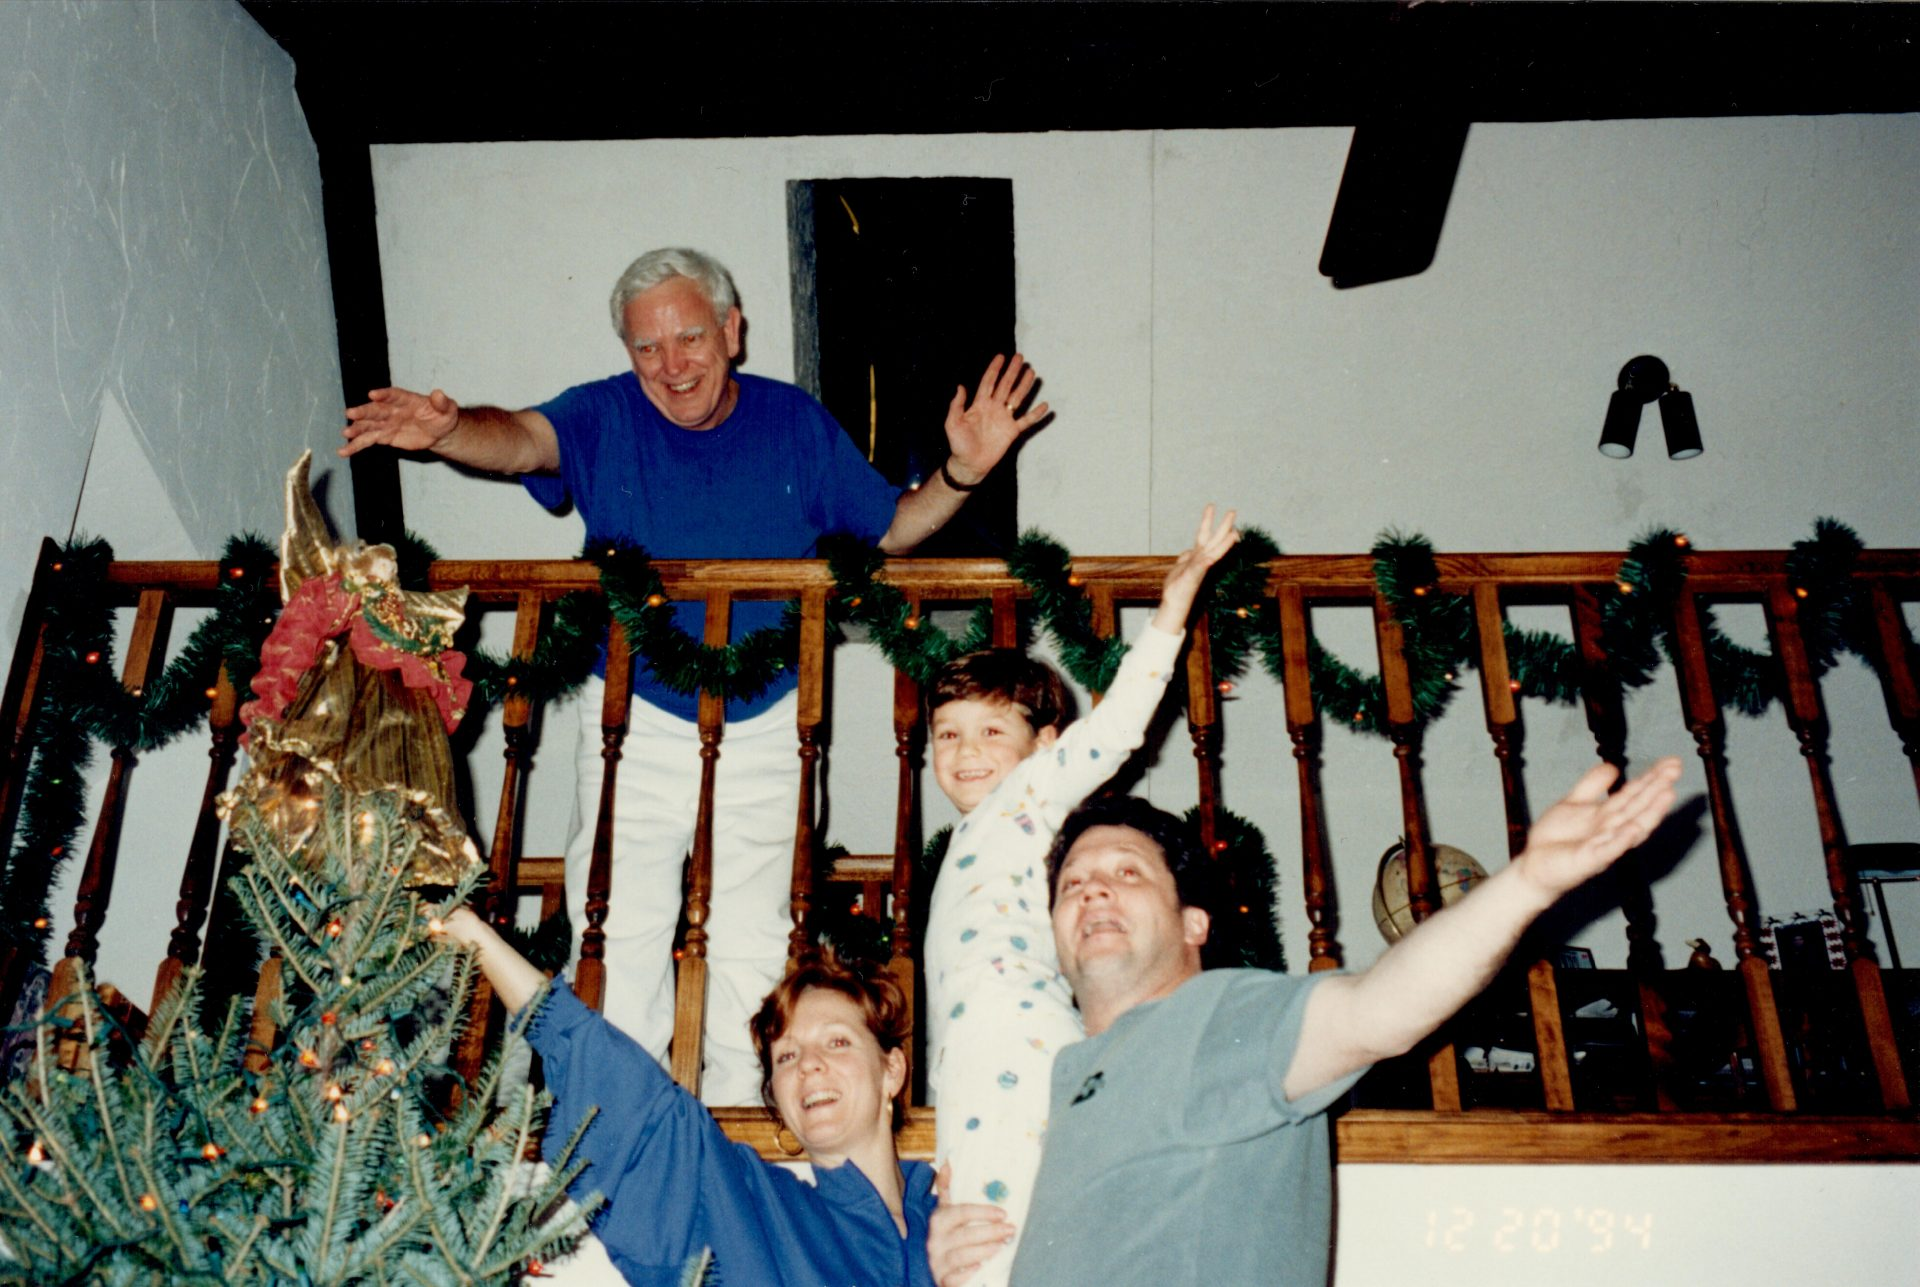 Cherished memories of Dad's love for Christmas!